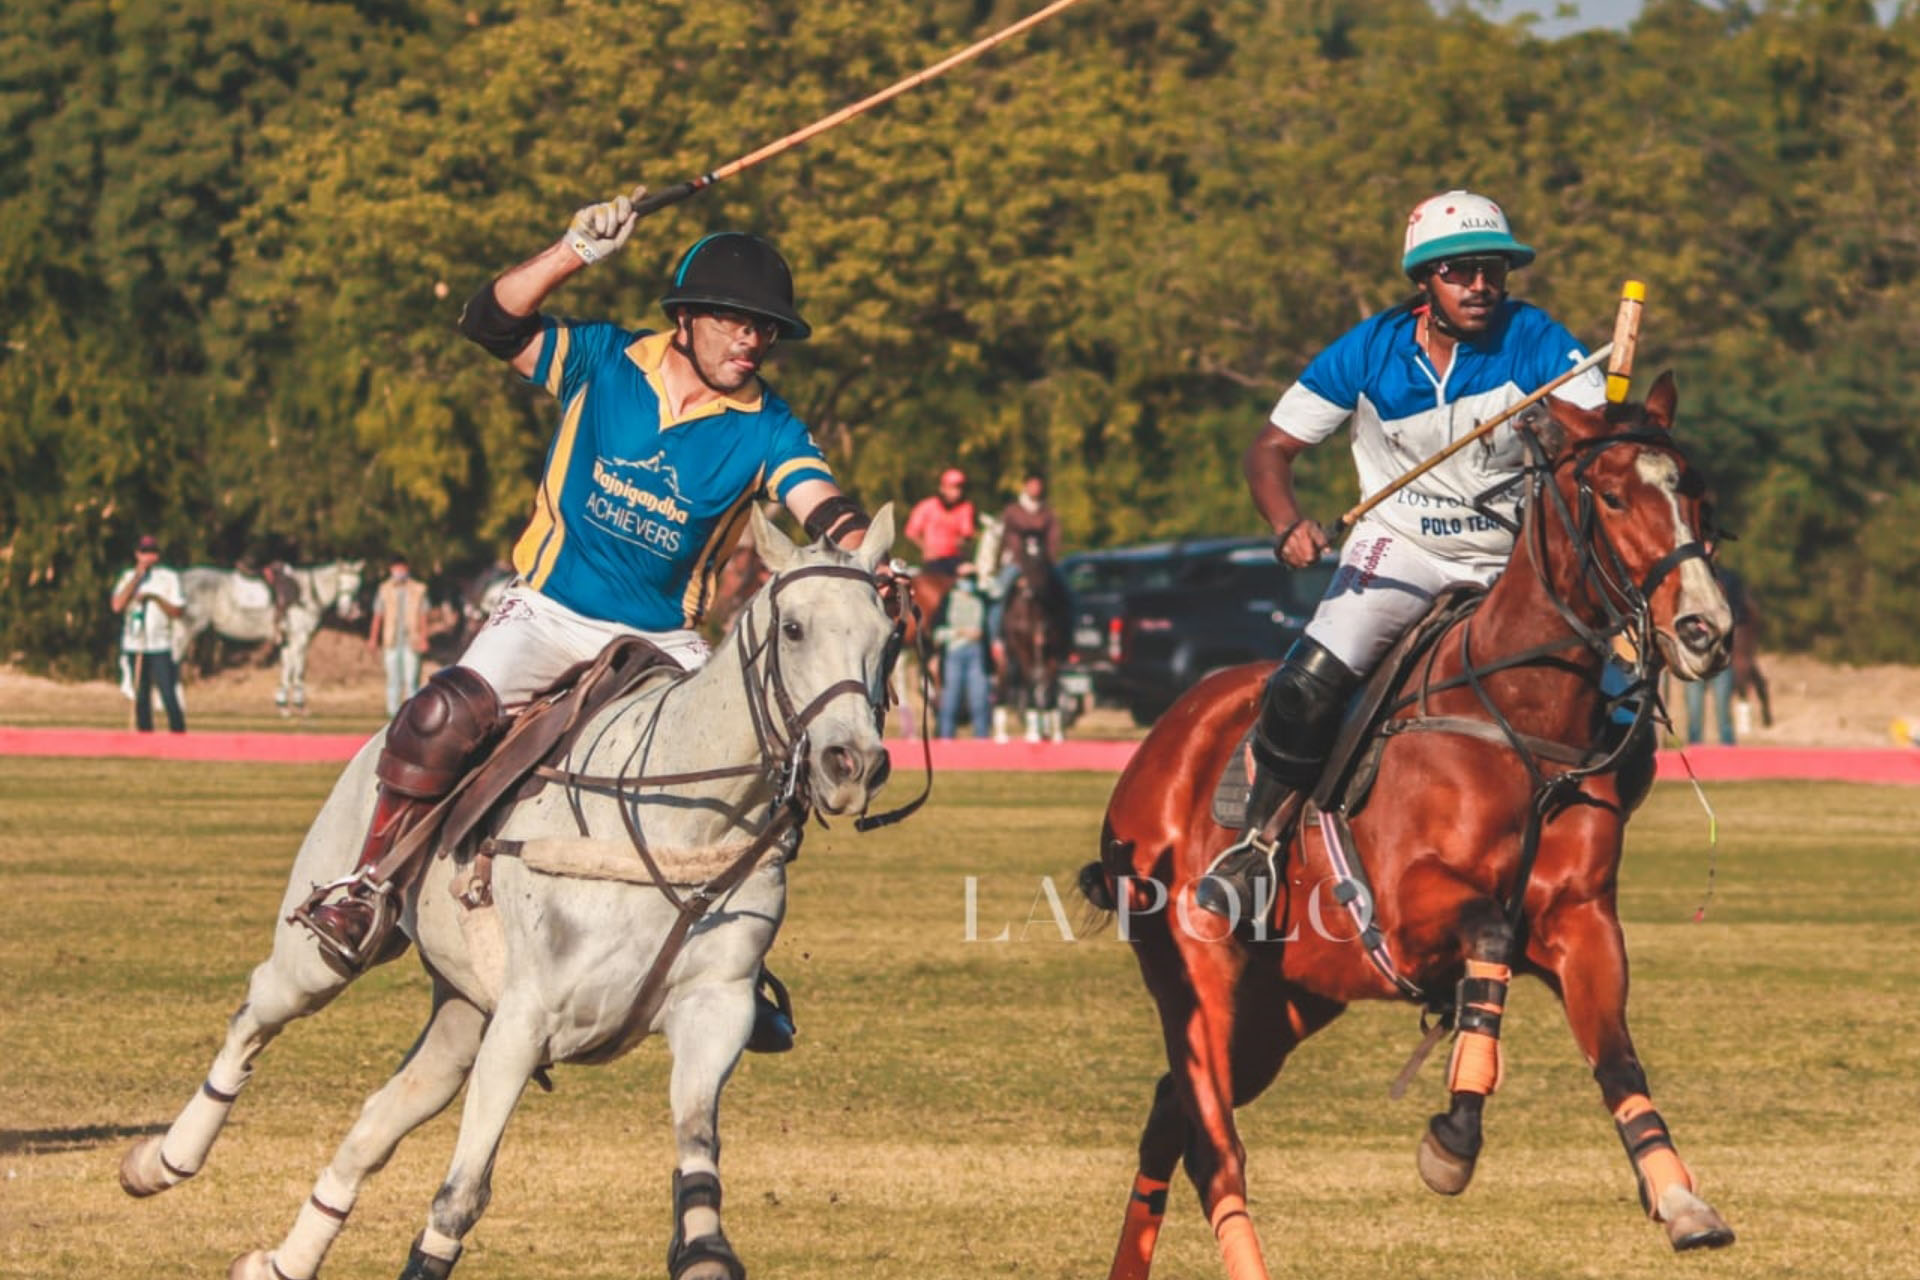 RAJNIGANDHA ACHIEVERS TO FACE ACHIEVERS ONN IN THE FINALS OF THE H.H. MAHARAJA OF JODHPUR CUP (8 Goals) AT THE 21st JODHPUR POLO SEASON 2020!